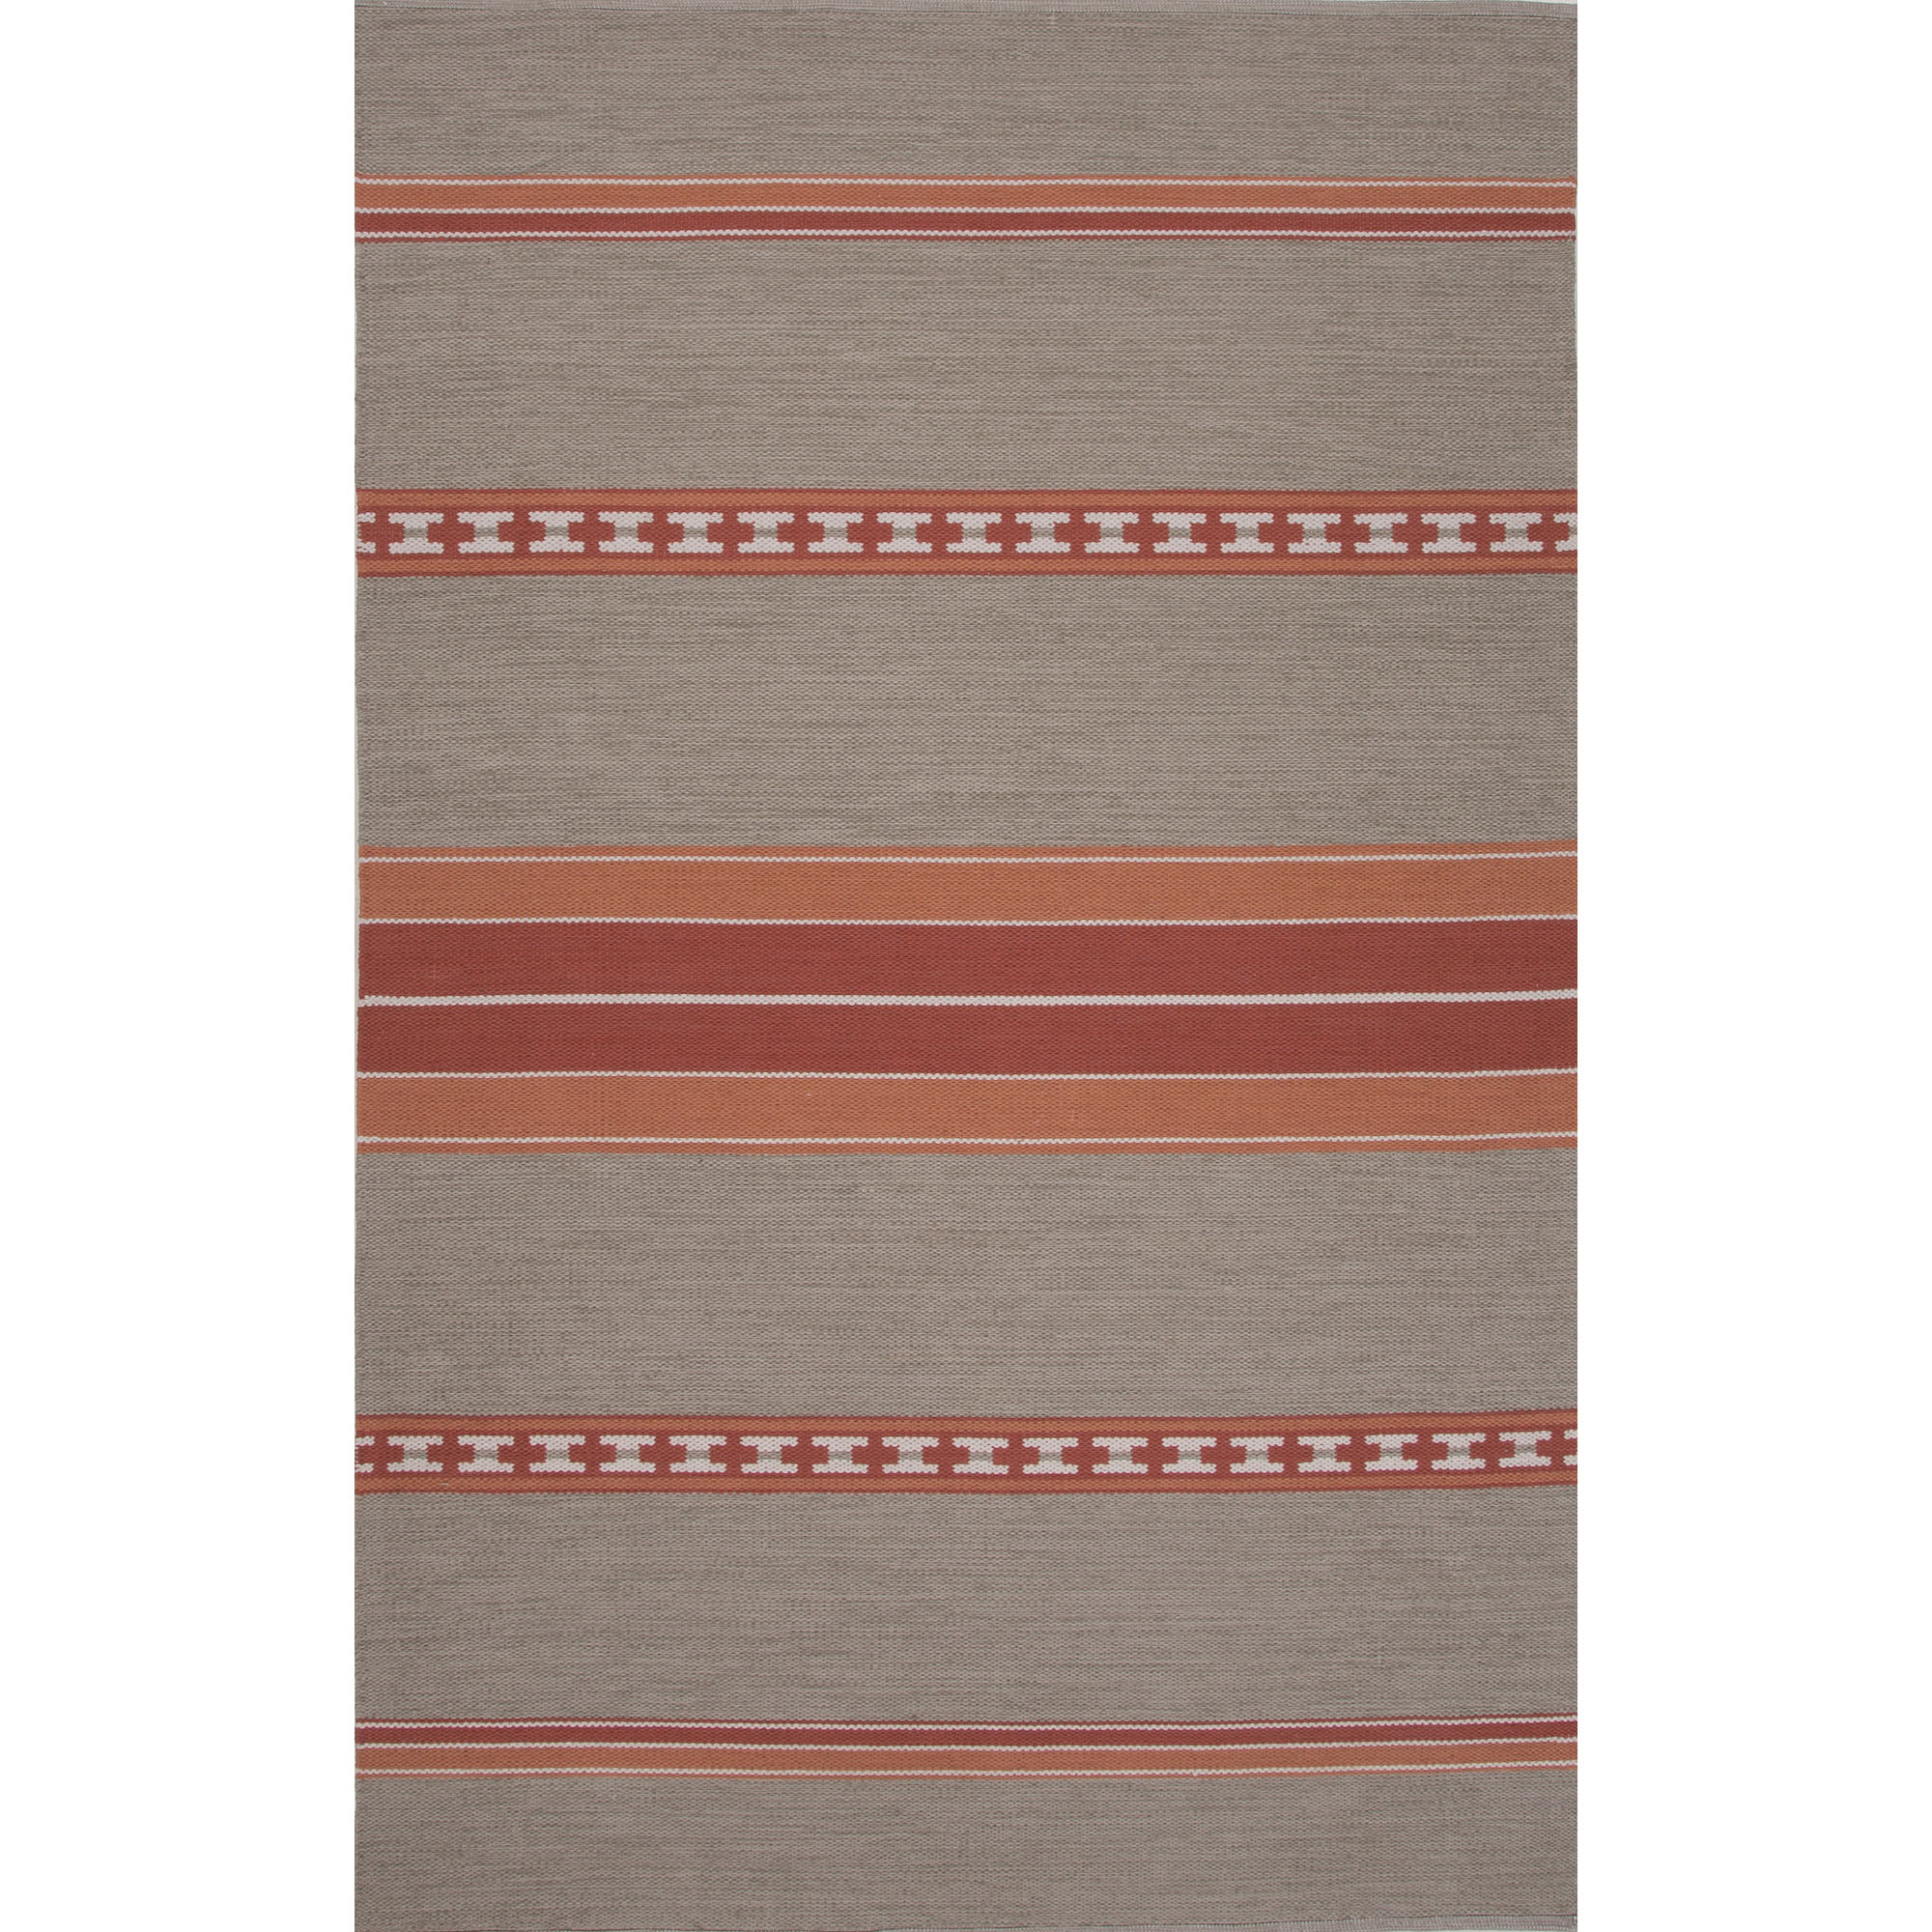 JAIPUR Rugs Traditions Modern Cotton Flat Weave 2 x 3 Rug - Item Number: RUG122420